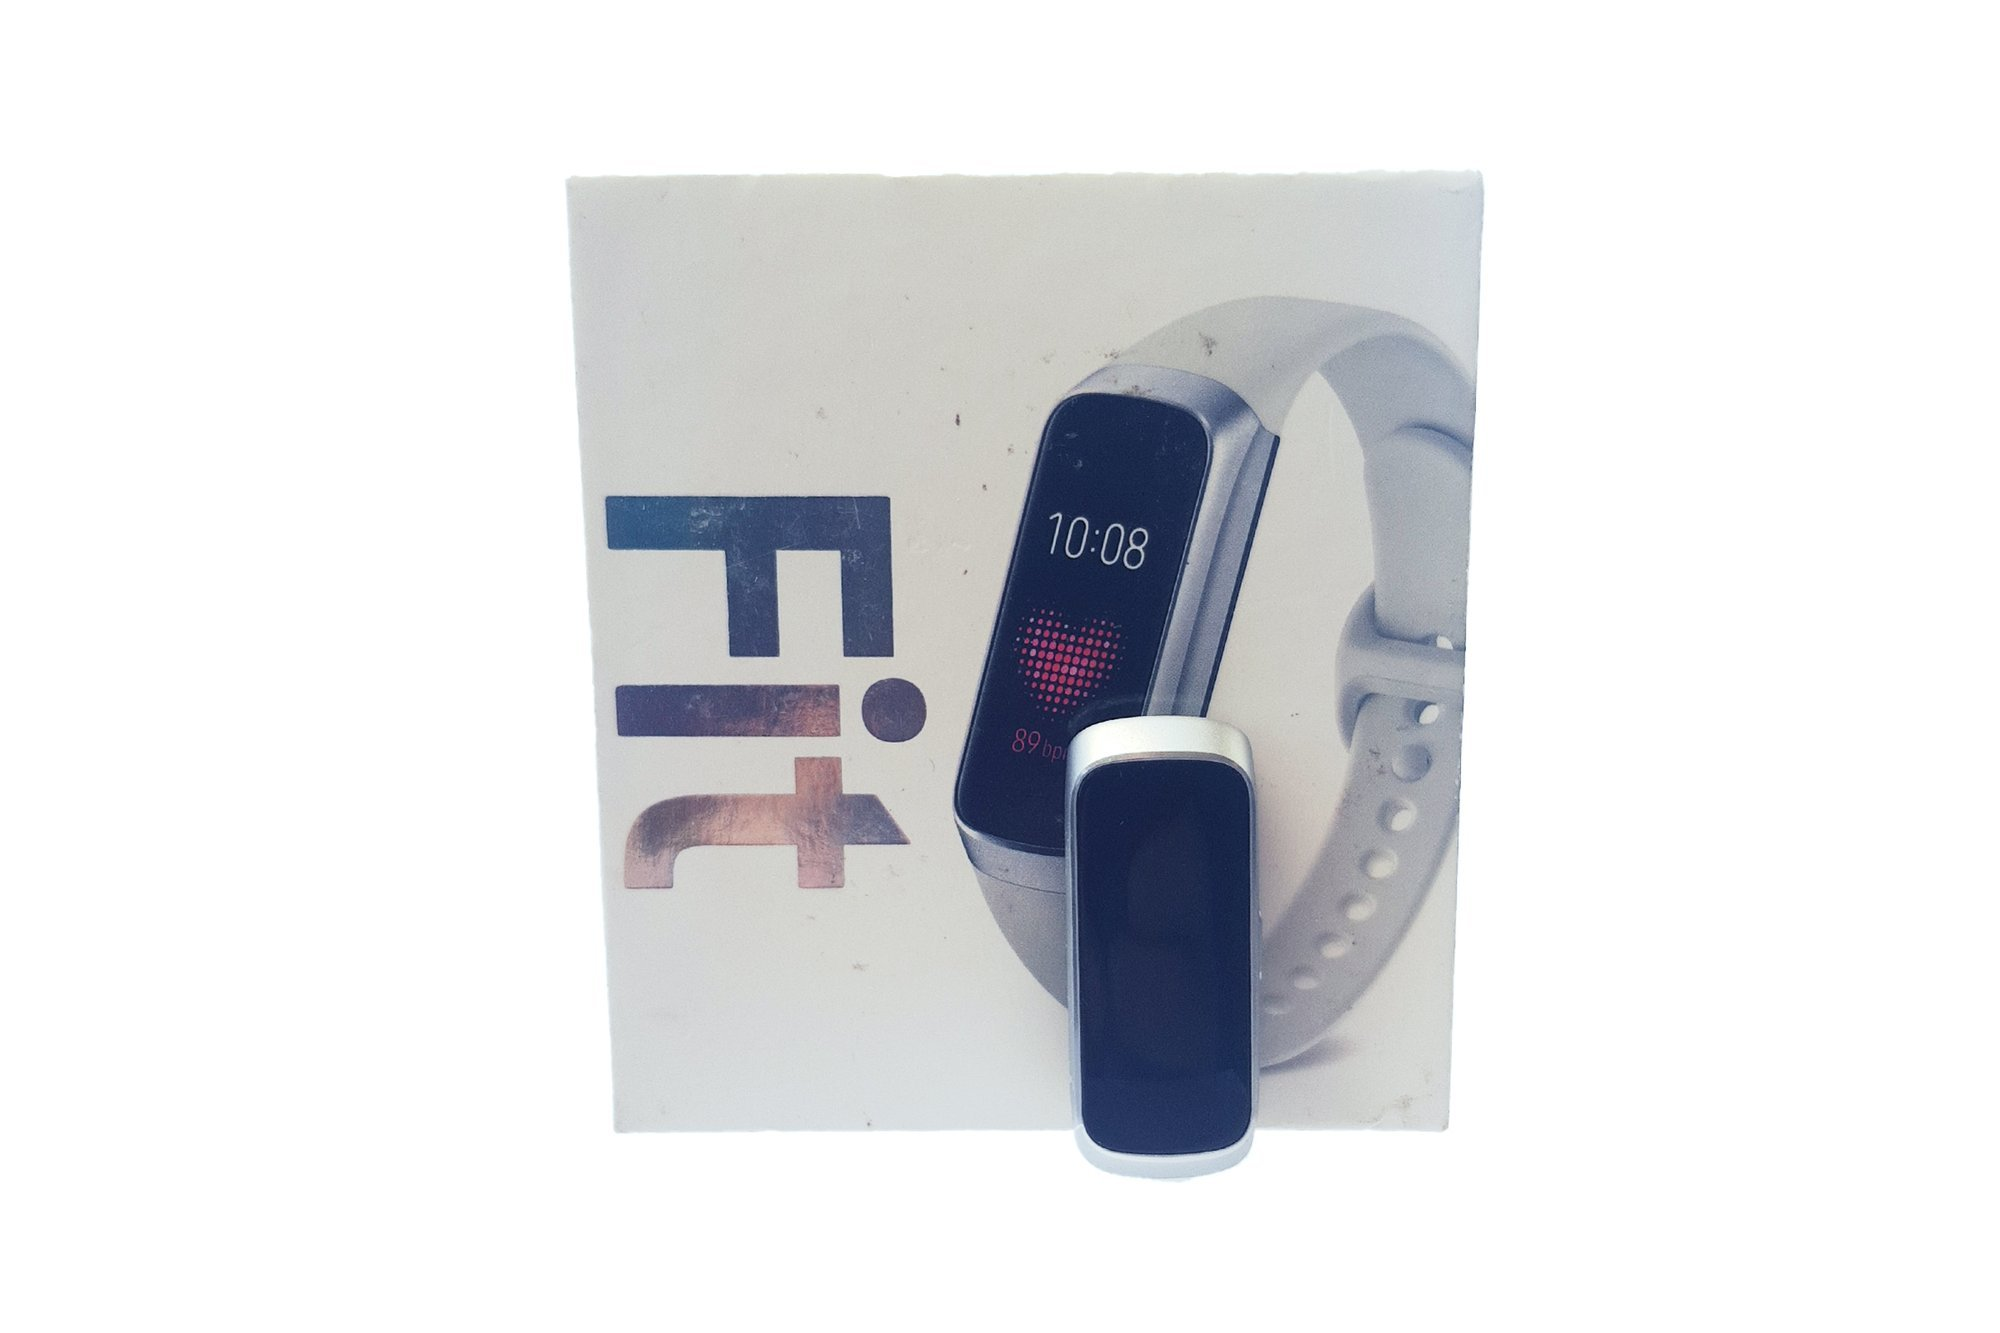 Samsung Galaxy Fit SM-R370 Smart Fitnessuhr Smartwatch Silver Damaged